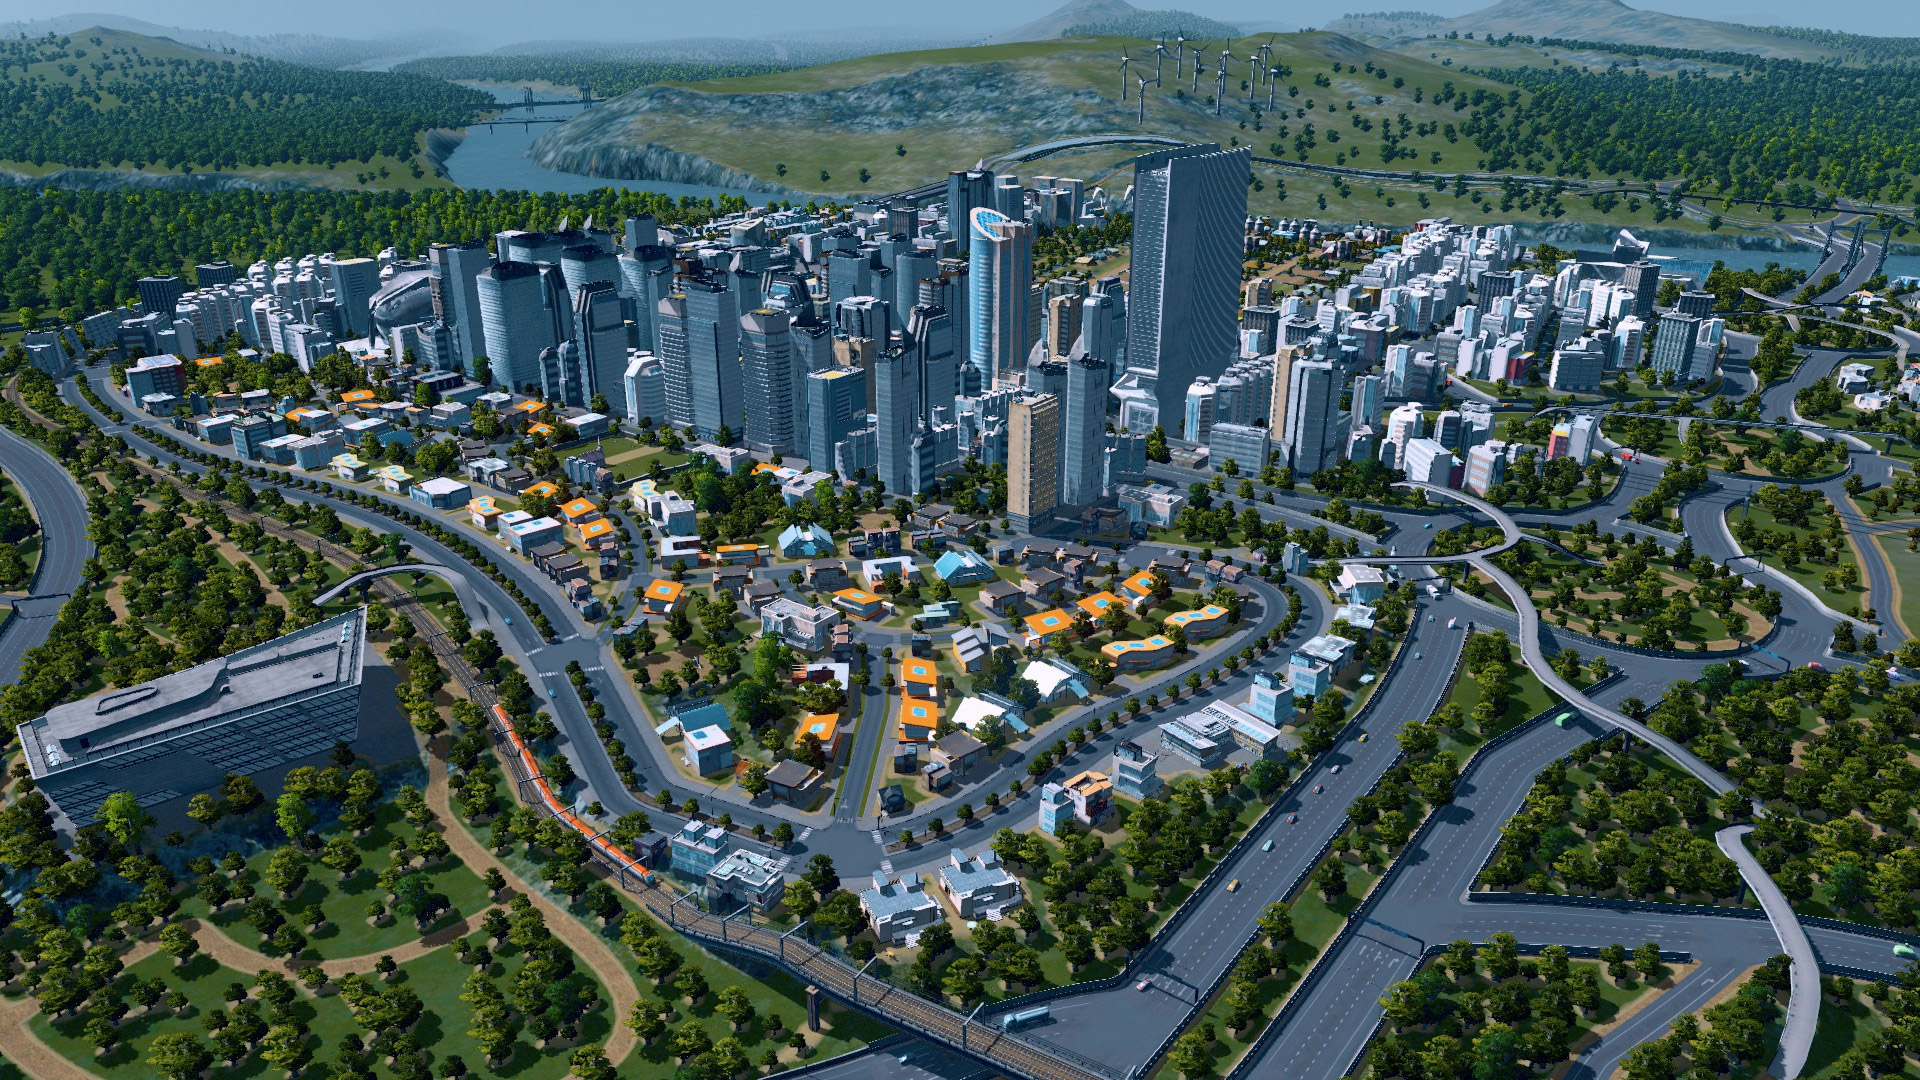 Cities: Skylines comes to Xbox One this month